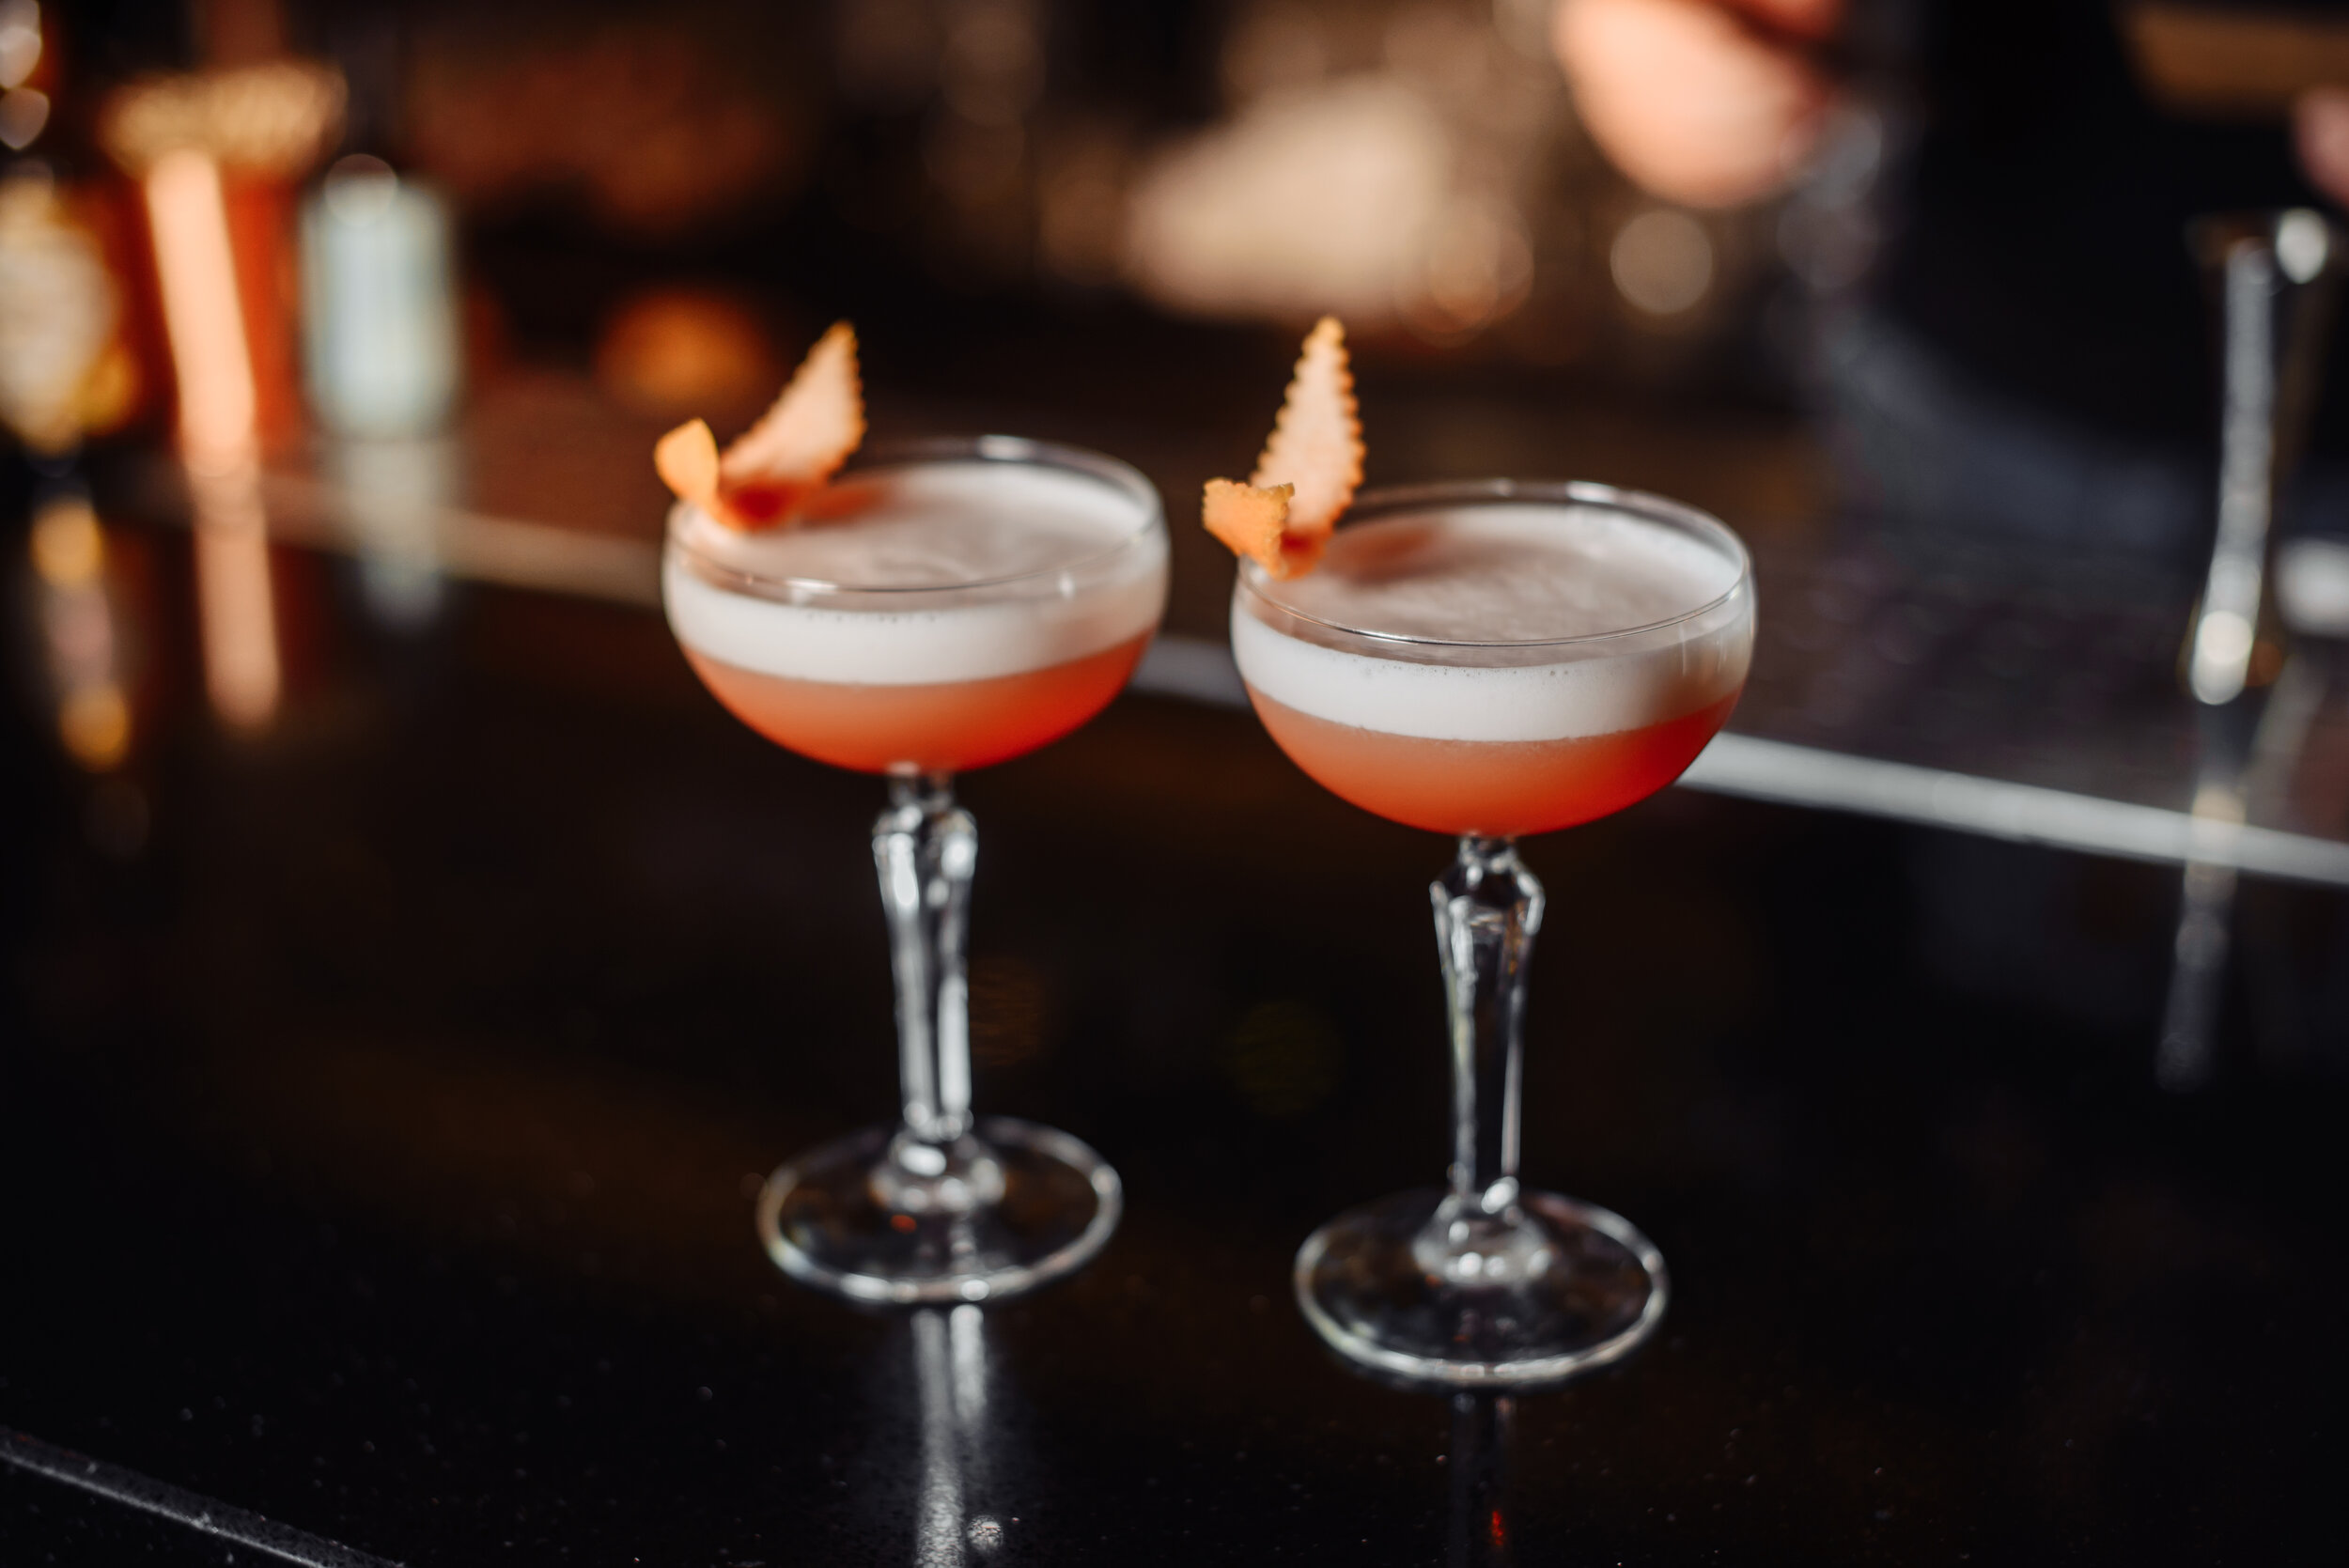 - Any of our preferred caterers that also offer a bar service is approved to bartend your event. These include:LUX Catering & Events, Culinary Crafts, Utah Food Services,Have Party Will Travel, or Brown BrothersOtherwise, you can use Cheers & Swizzles listed below